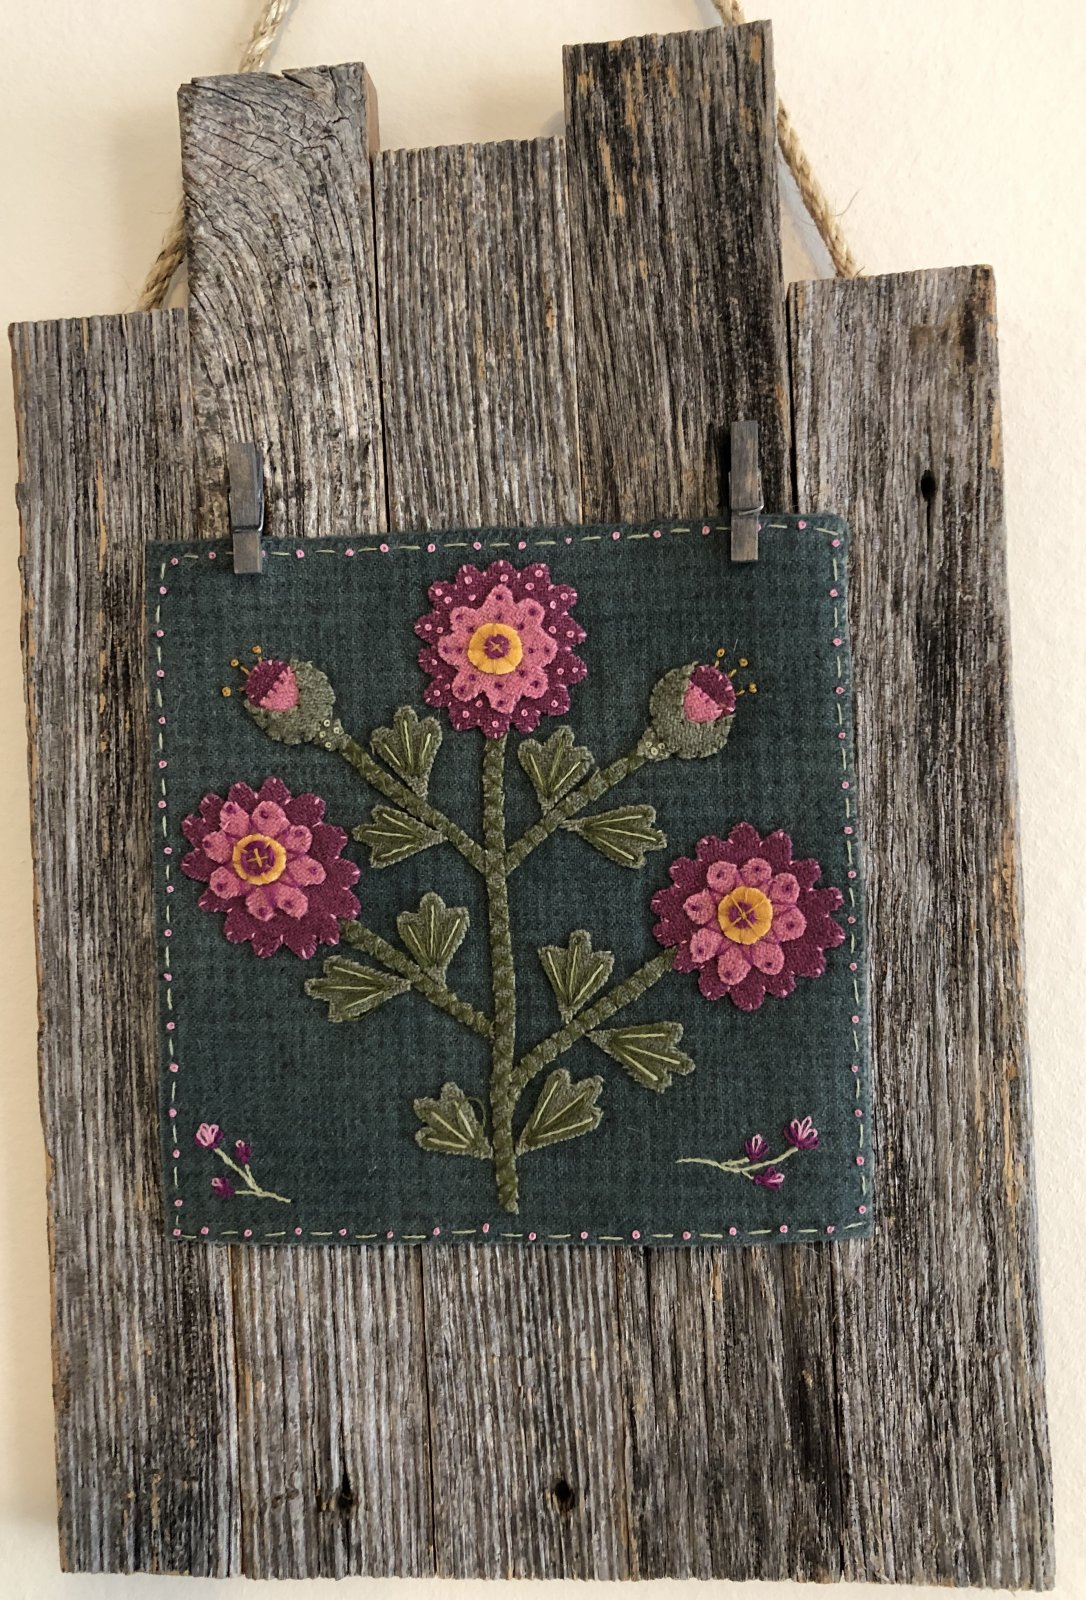 Rose of Sharon Wool kit and Wood Hanger